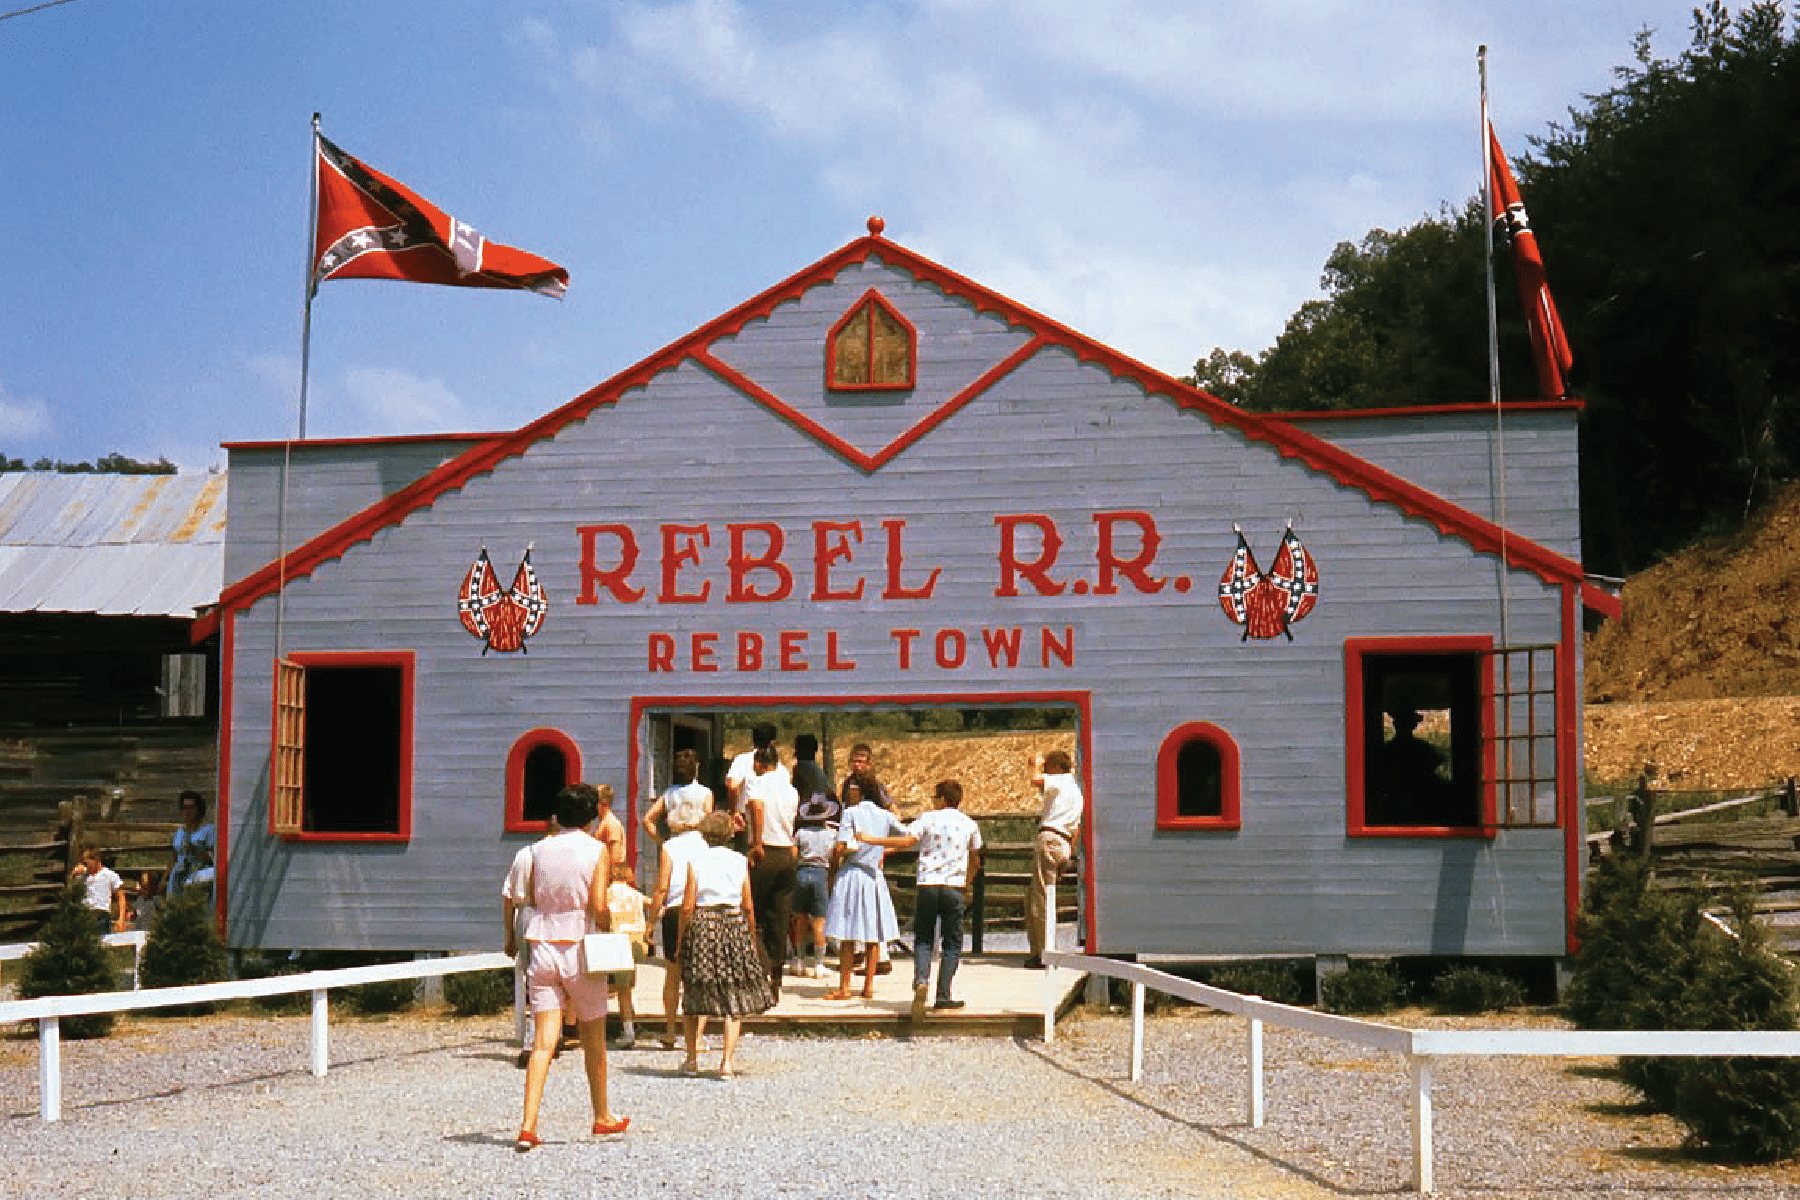 Rebel Railroad in Rebel Town historic photo in Pigeon Forge.